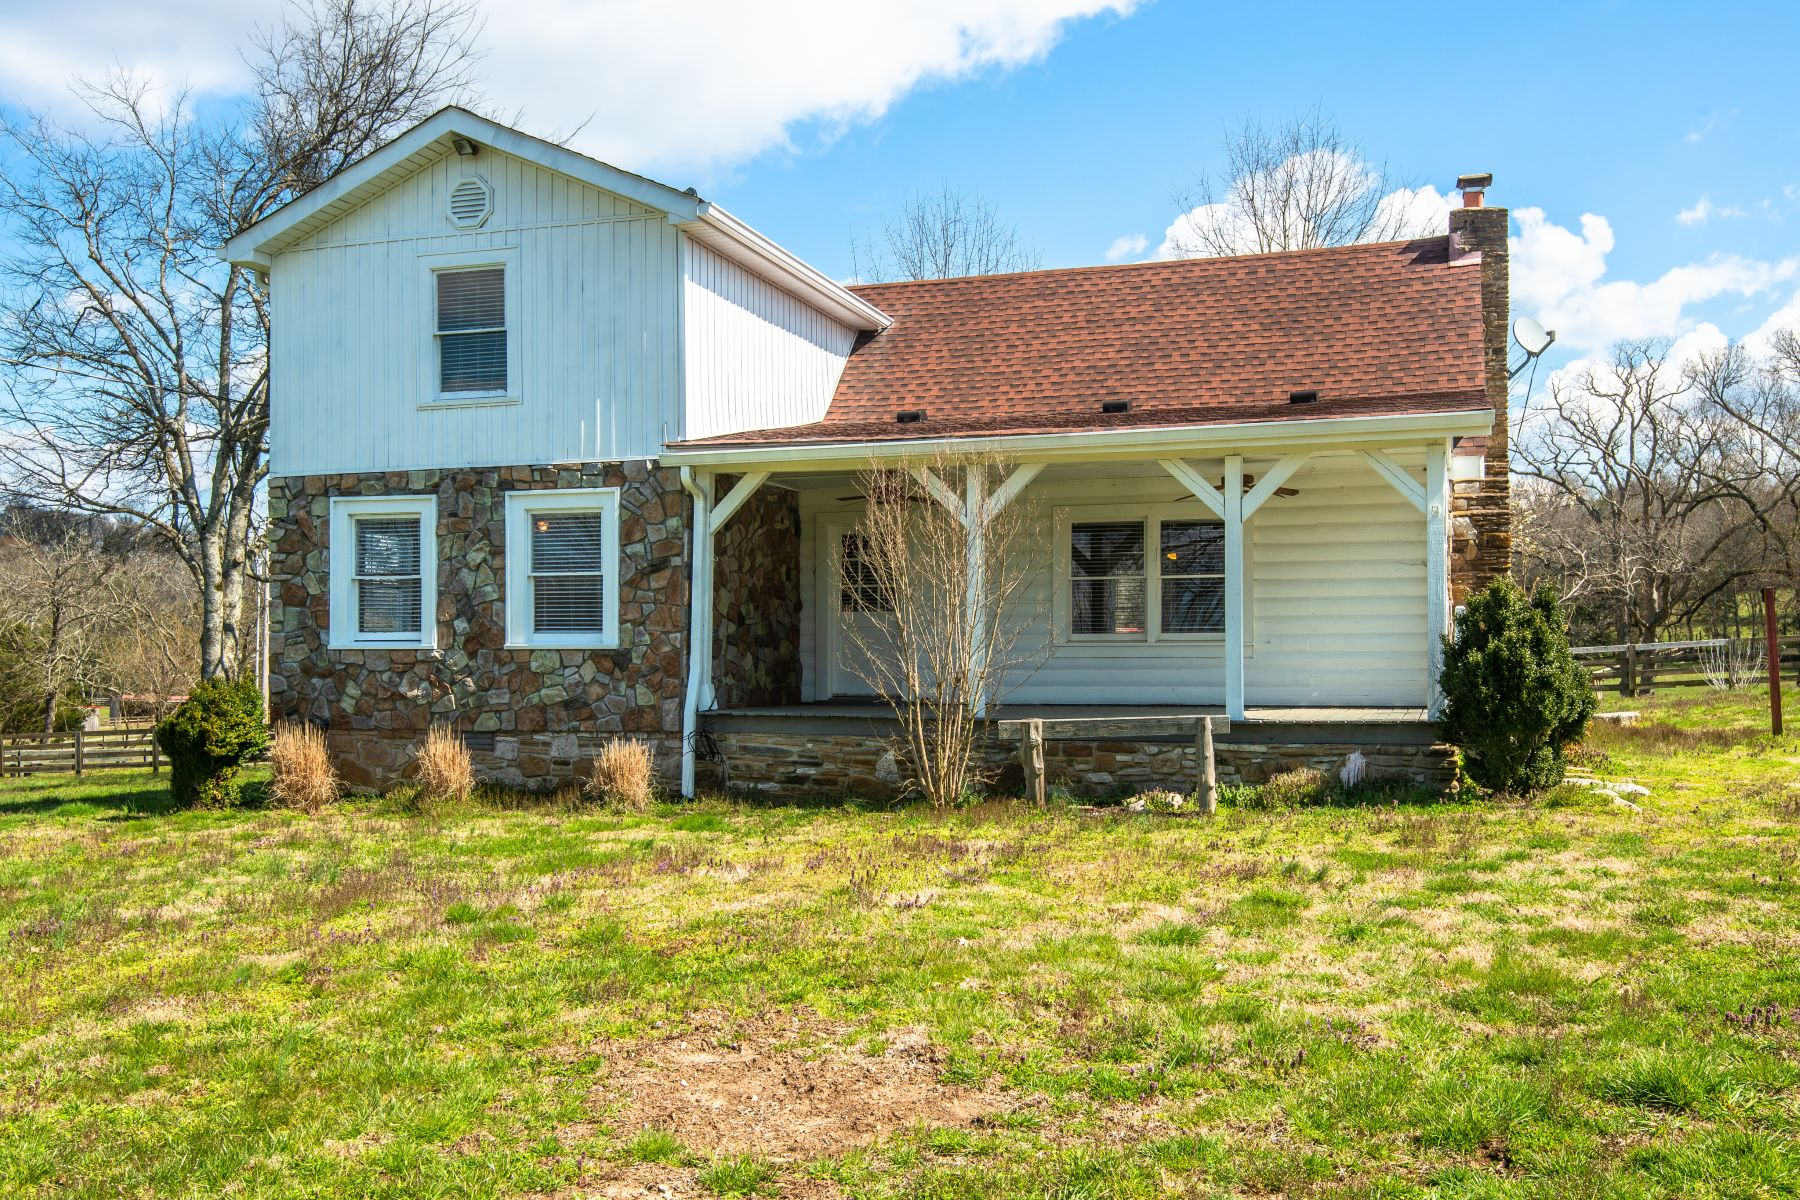 Single Family Home for Sale at Farm and Log Cabin 3088 Wilson Pike Franklin, Tennessee 37067 United States